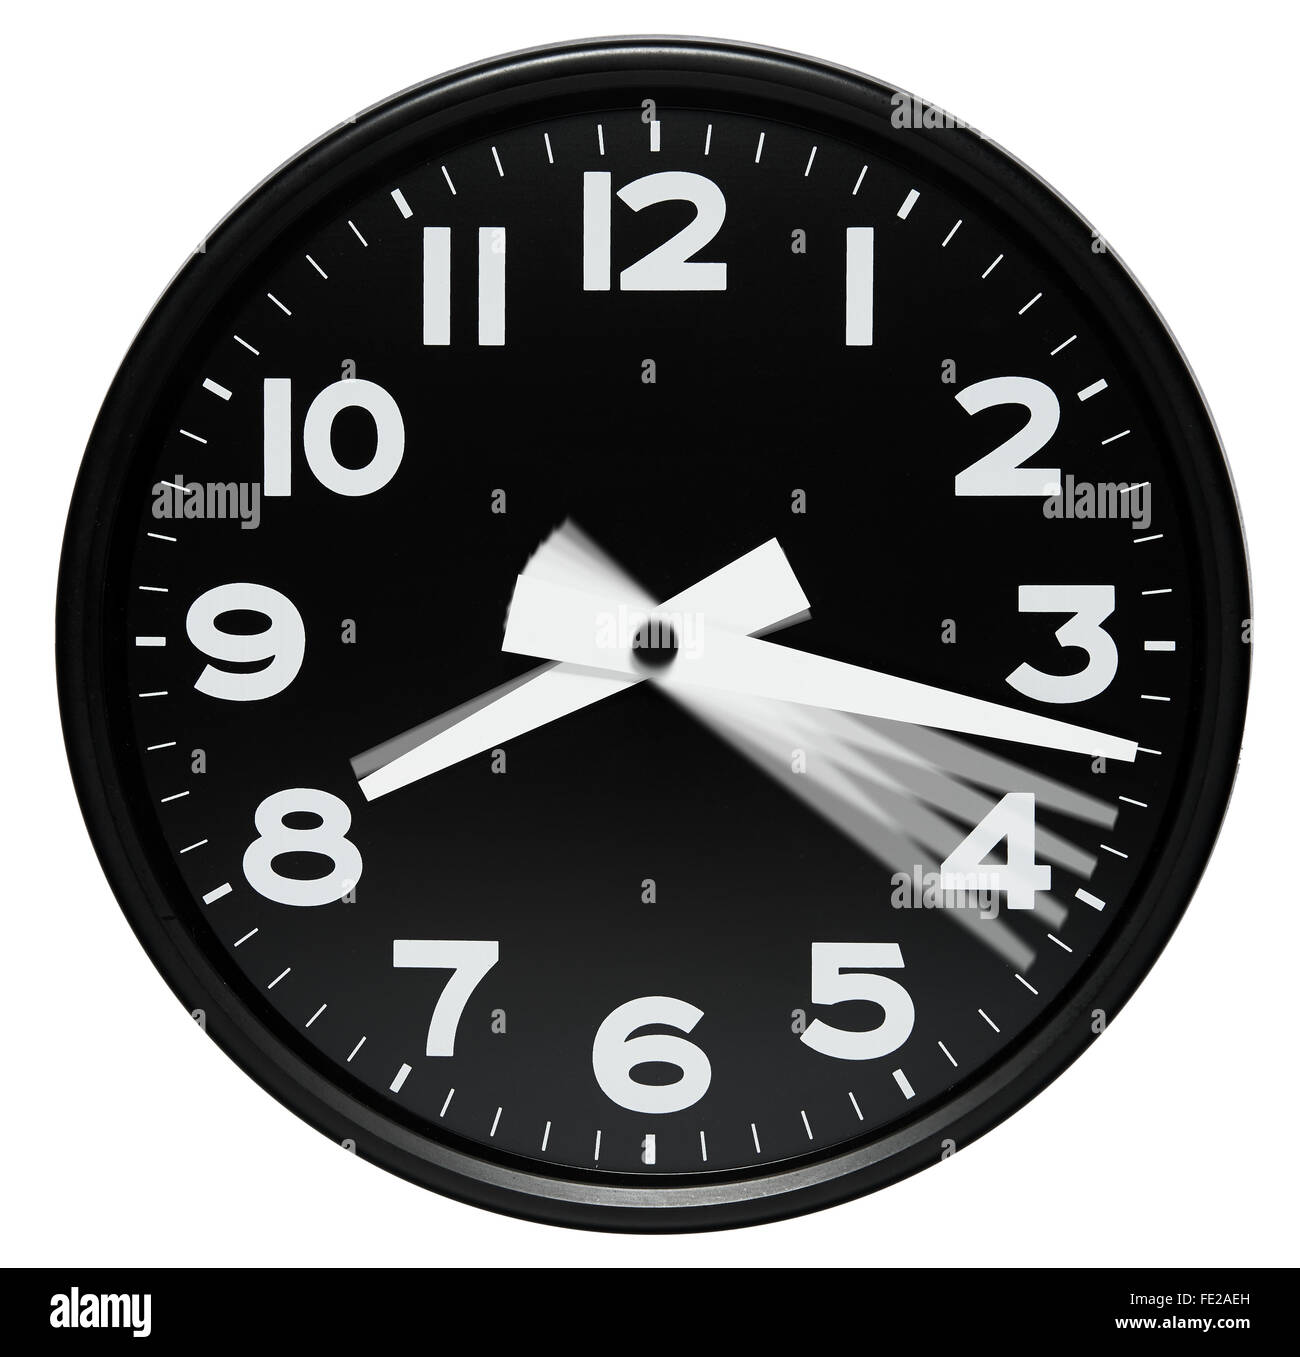 Clock dial showing passing minutes as motion blur positions of the minute hand in one minute increments - Stock Image